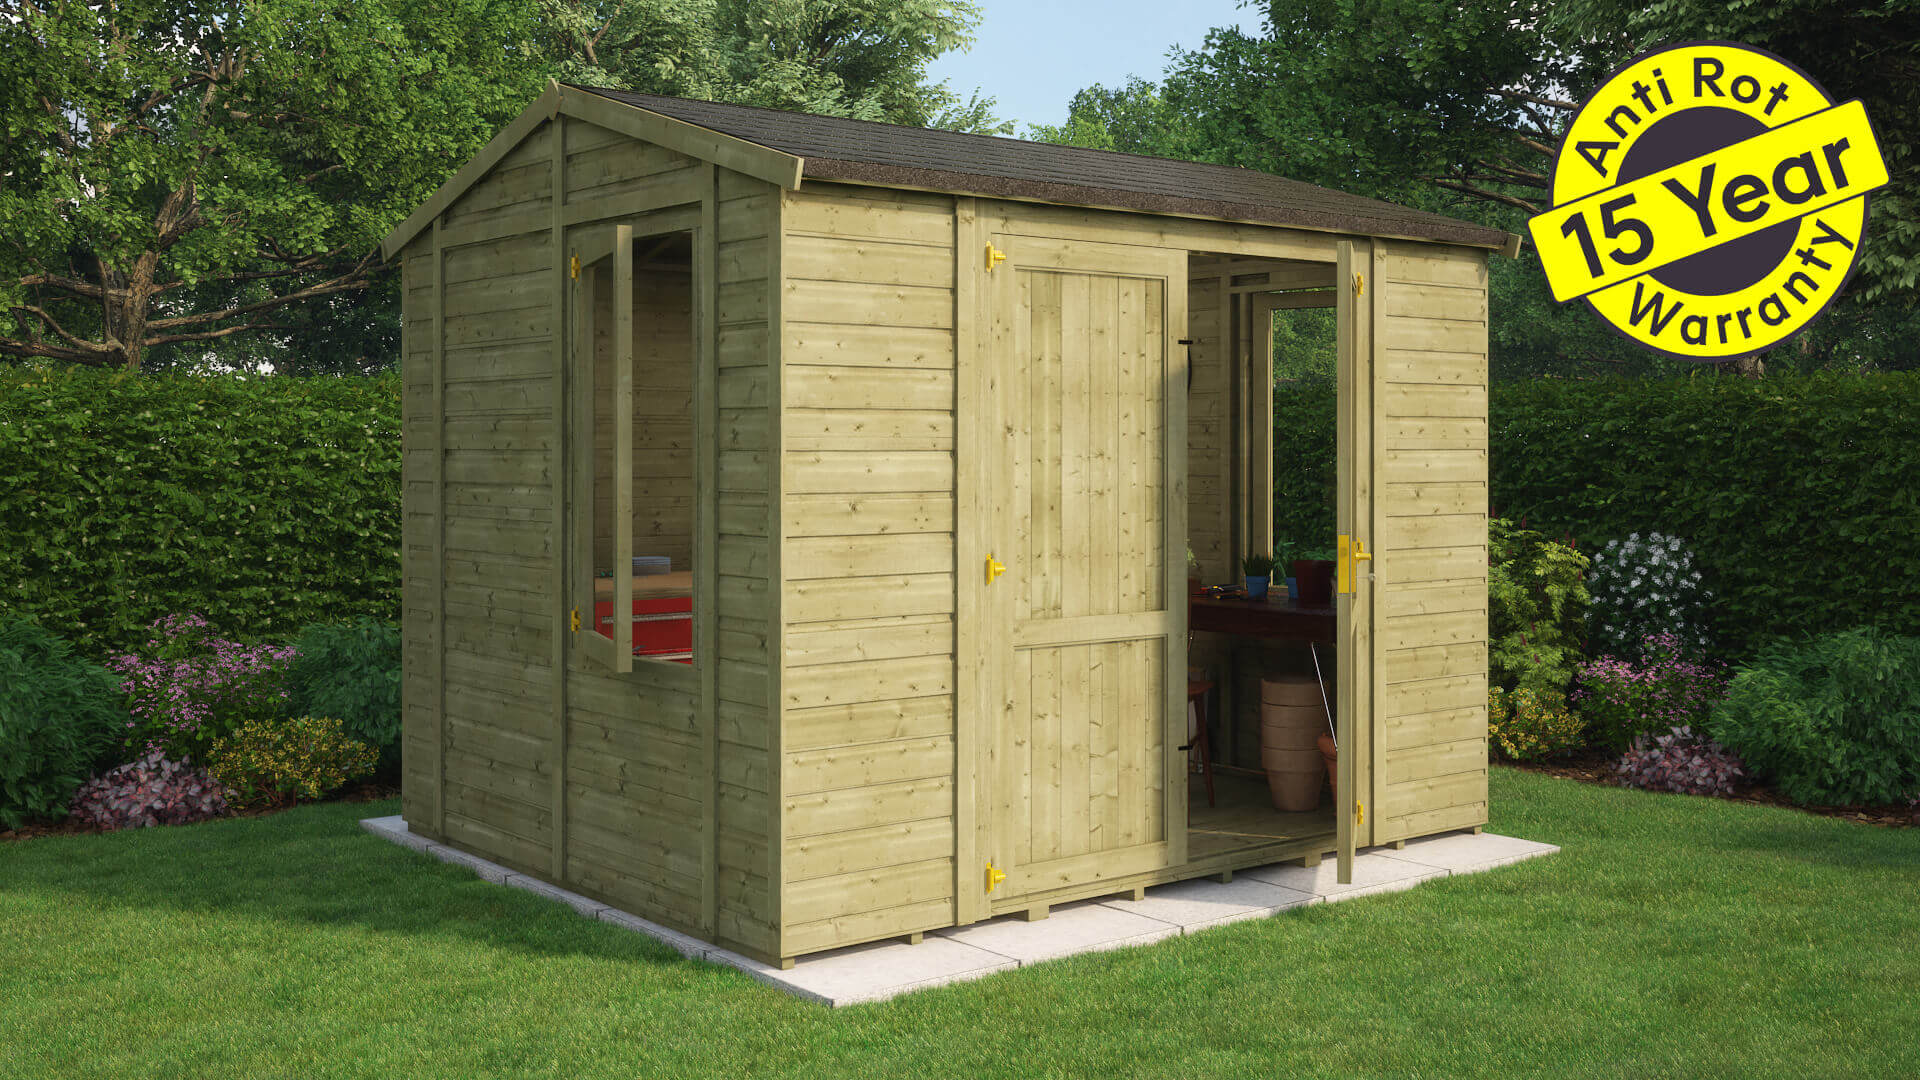 Grandmaster 10x8 central door workshop tg roof and floor pressure treated 15 year warranty